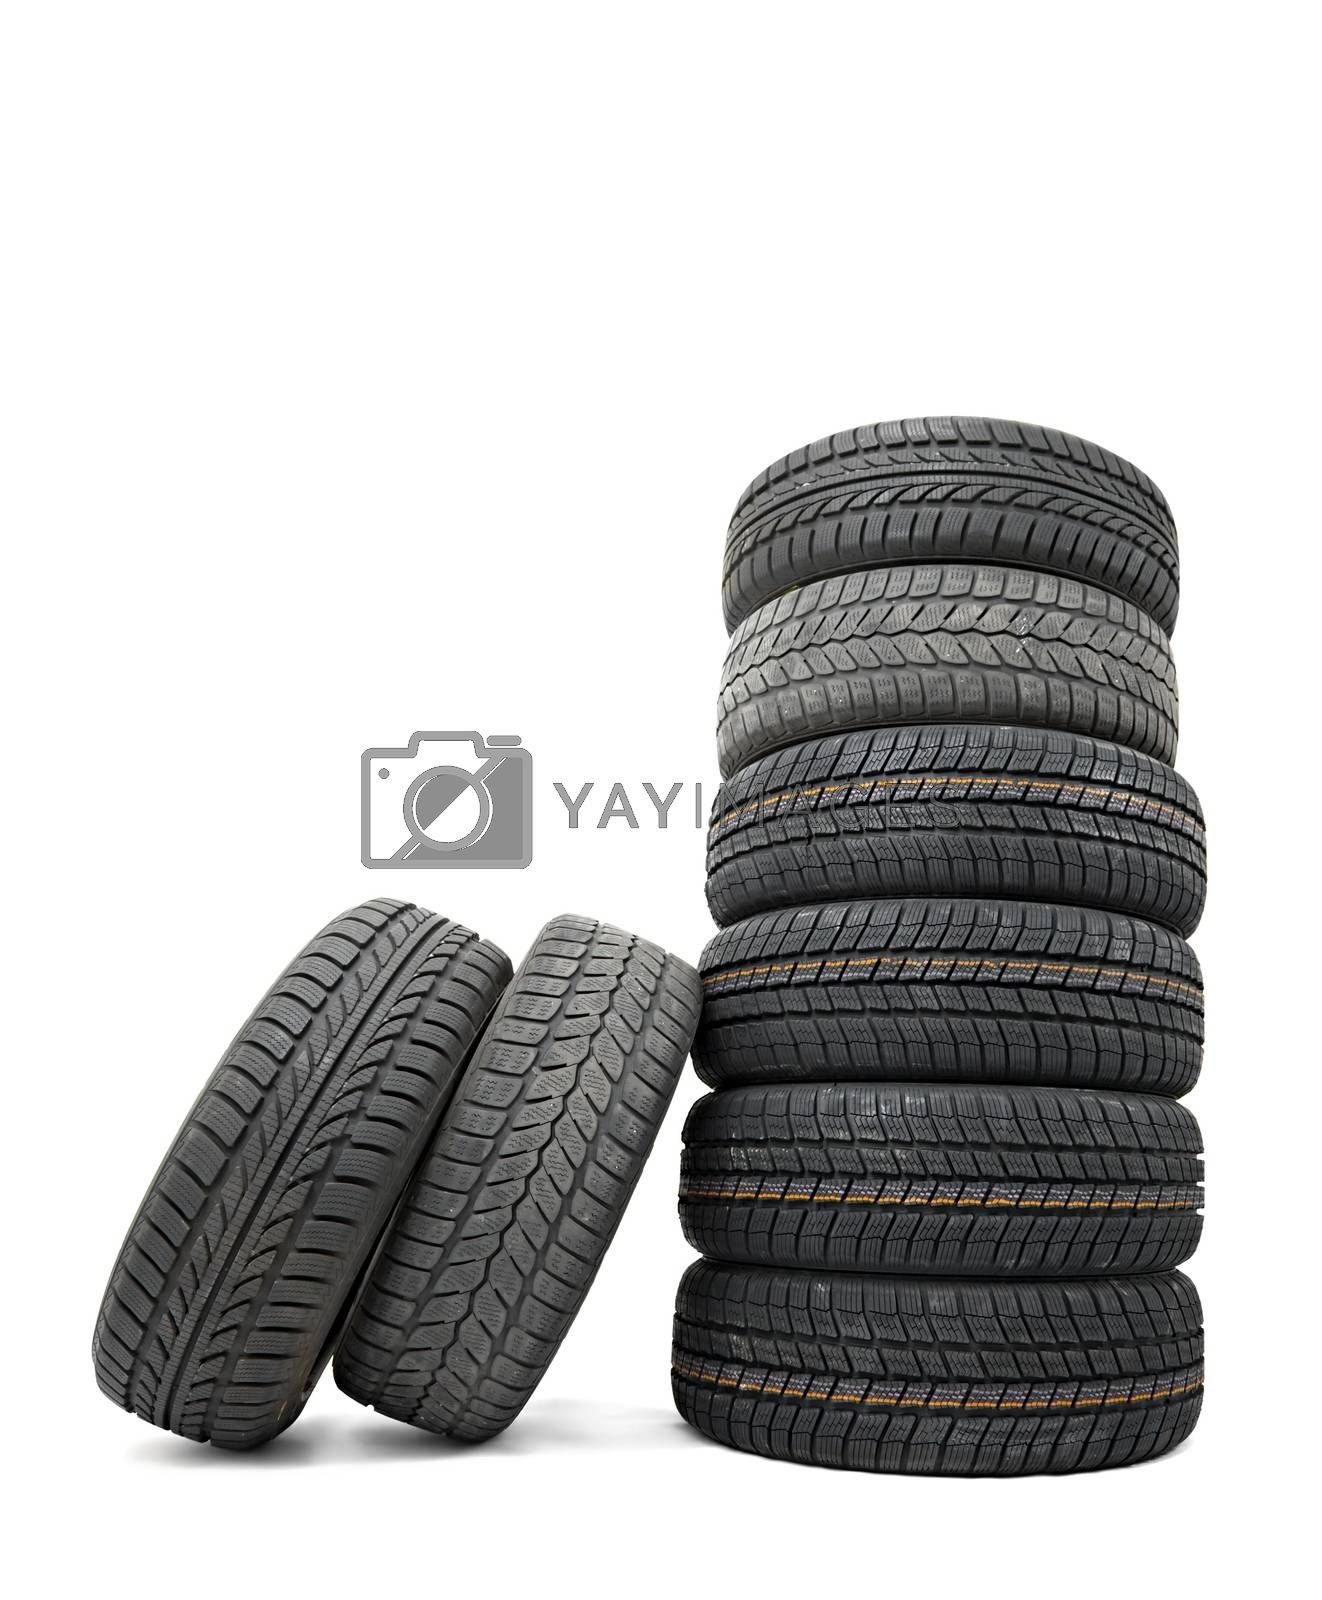 A set of new winter tyres